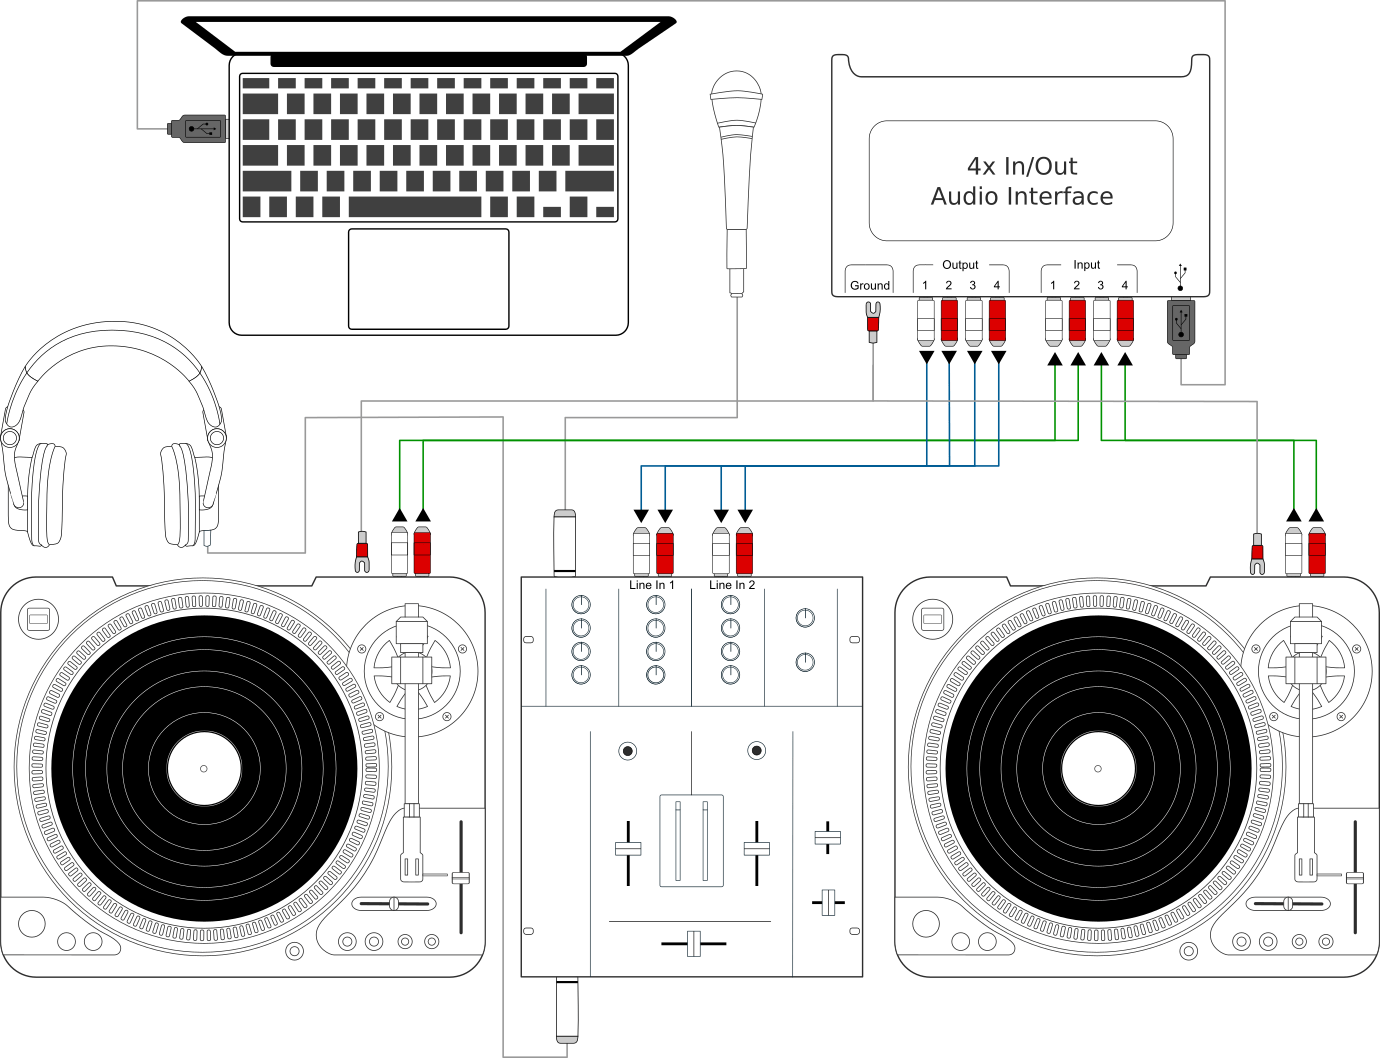 hight resolution of hight resolution of using mixxx together with turntables and external mixer